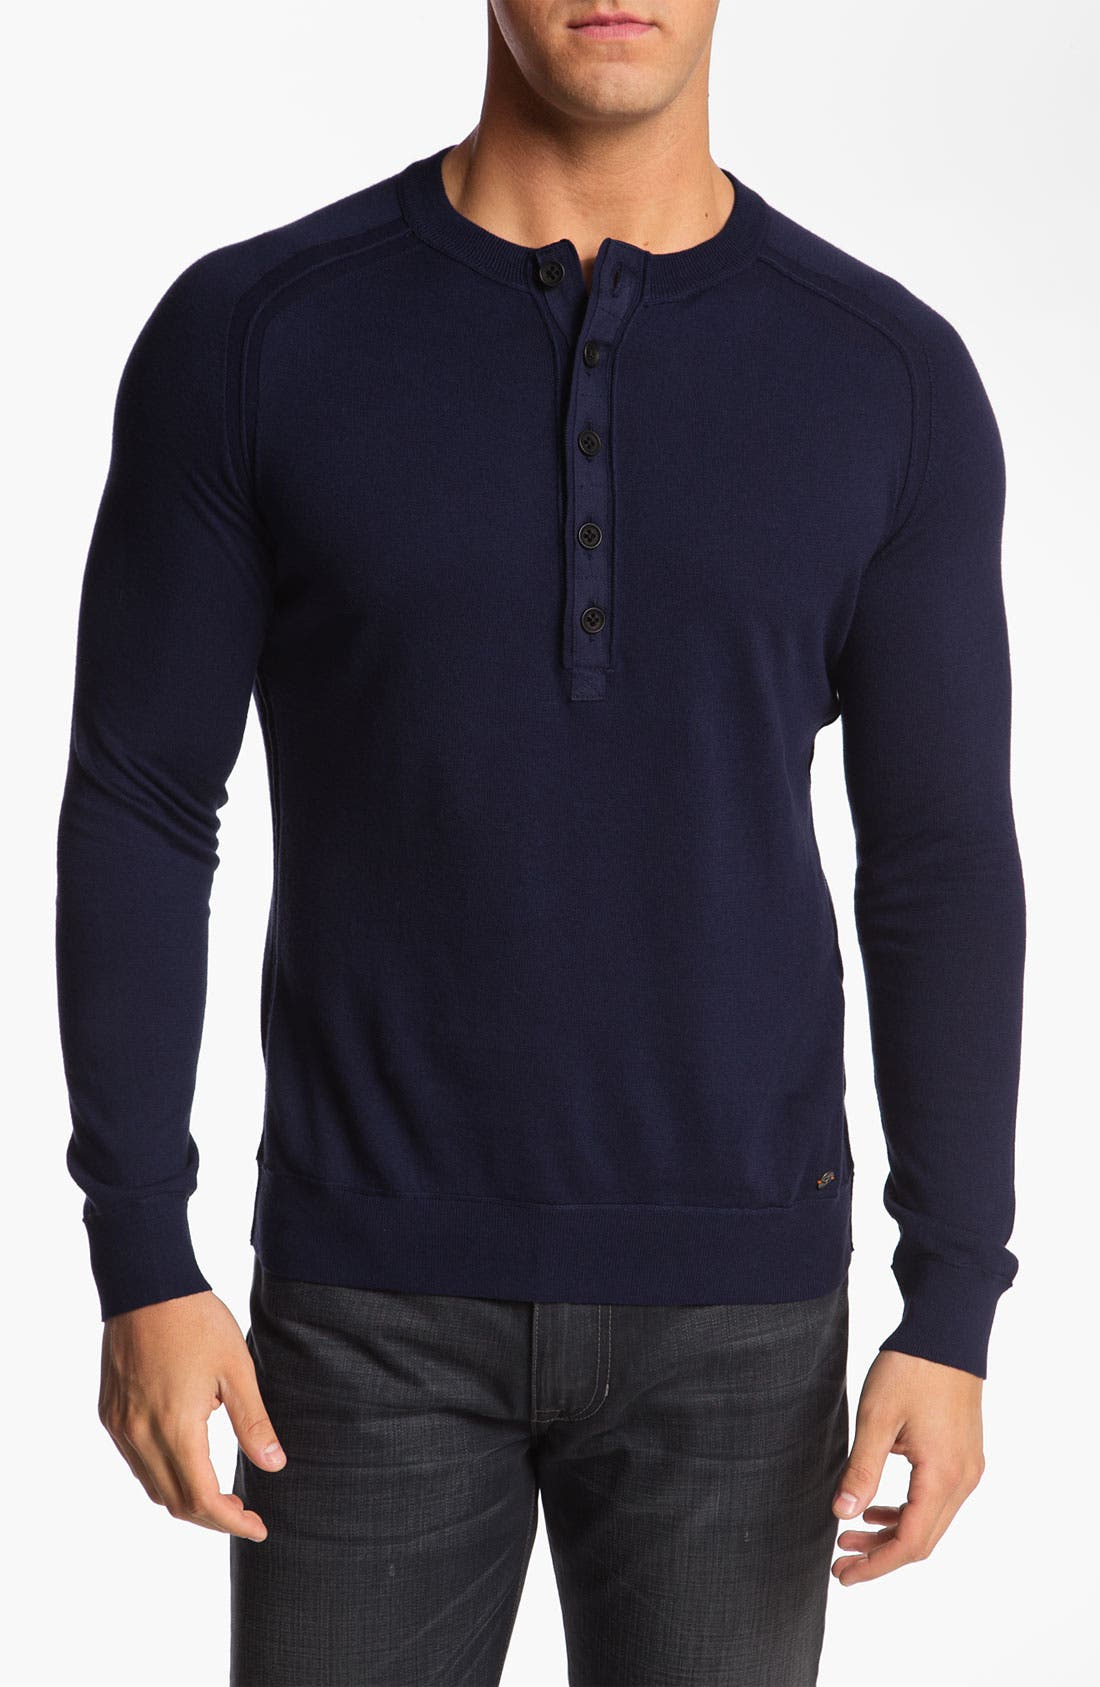 Main Image - BOSS Orange Trim Fit Knit Henley